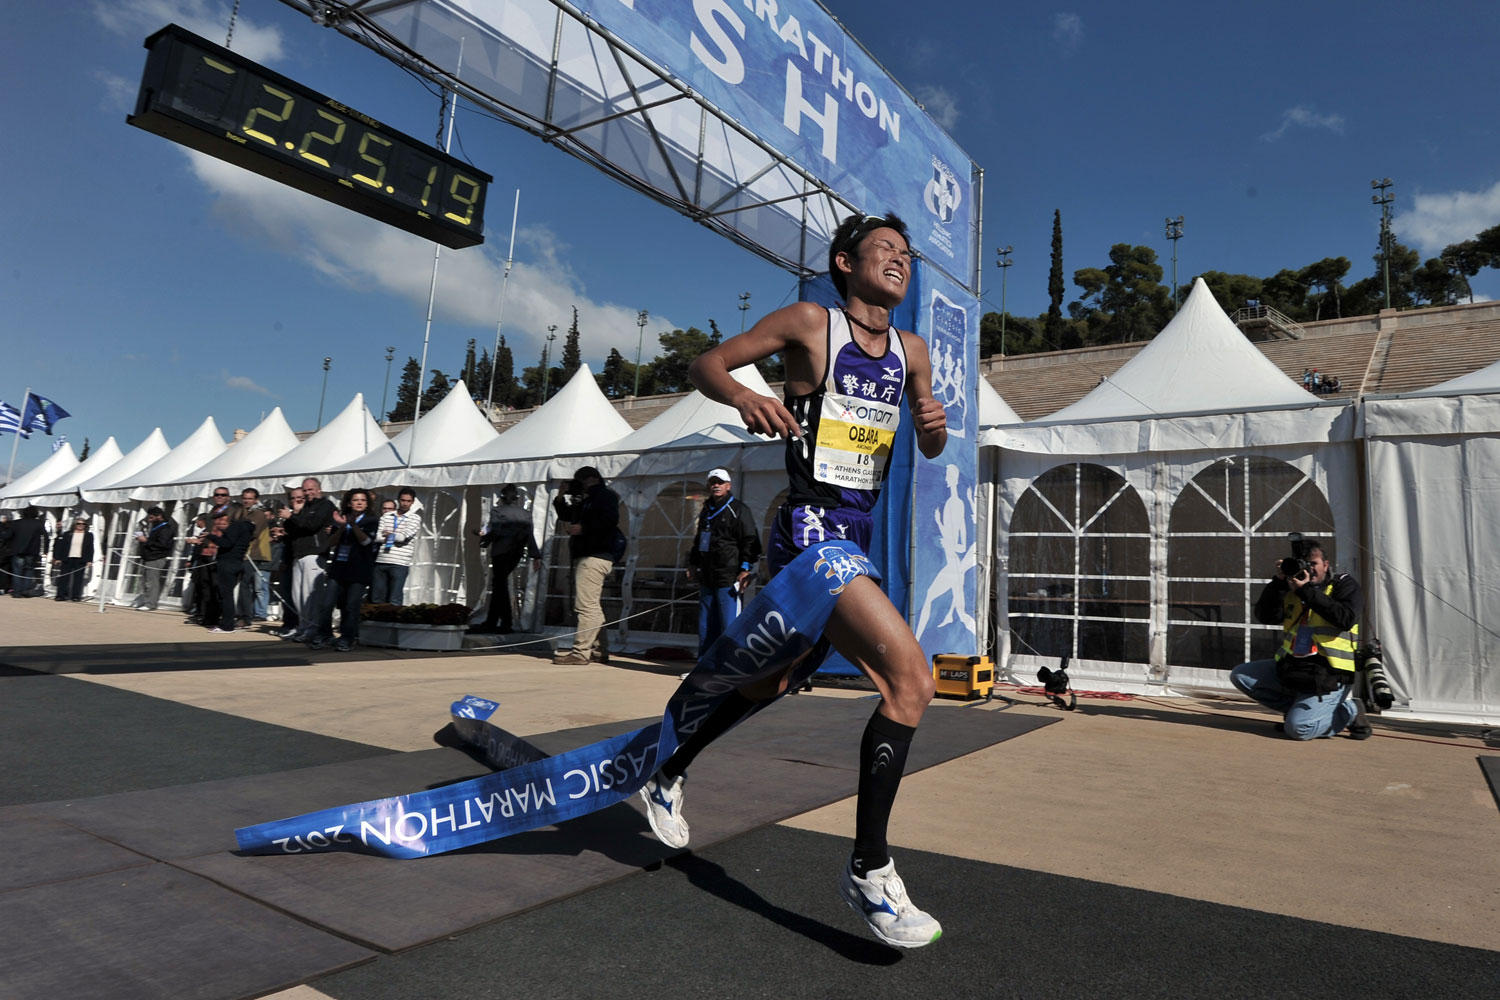 Japan's Akinori Obara crosses the finish line of the 30th Athens Classic Marathon in Athens Panathenaen stadium in 2012.